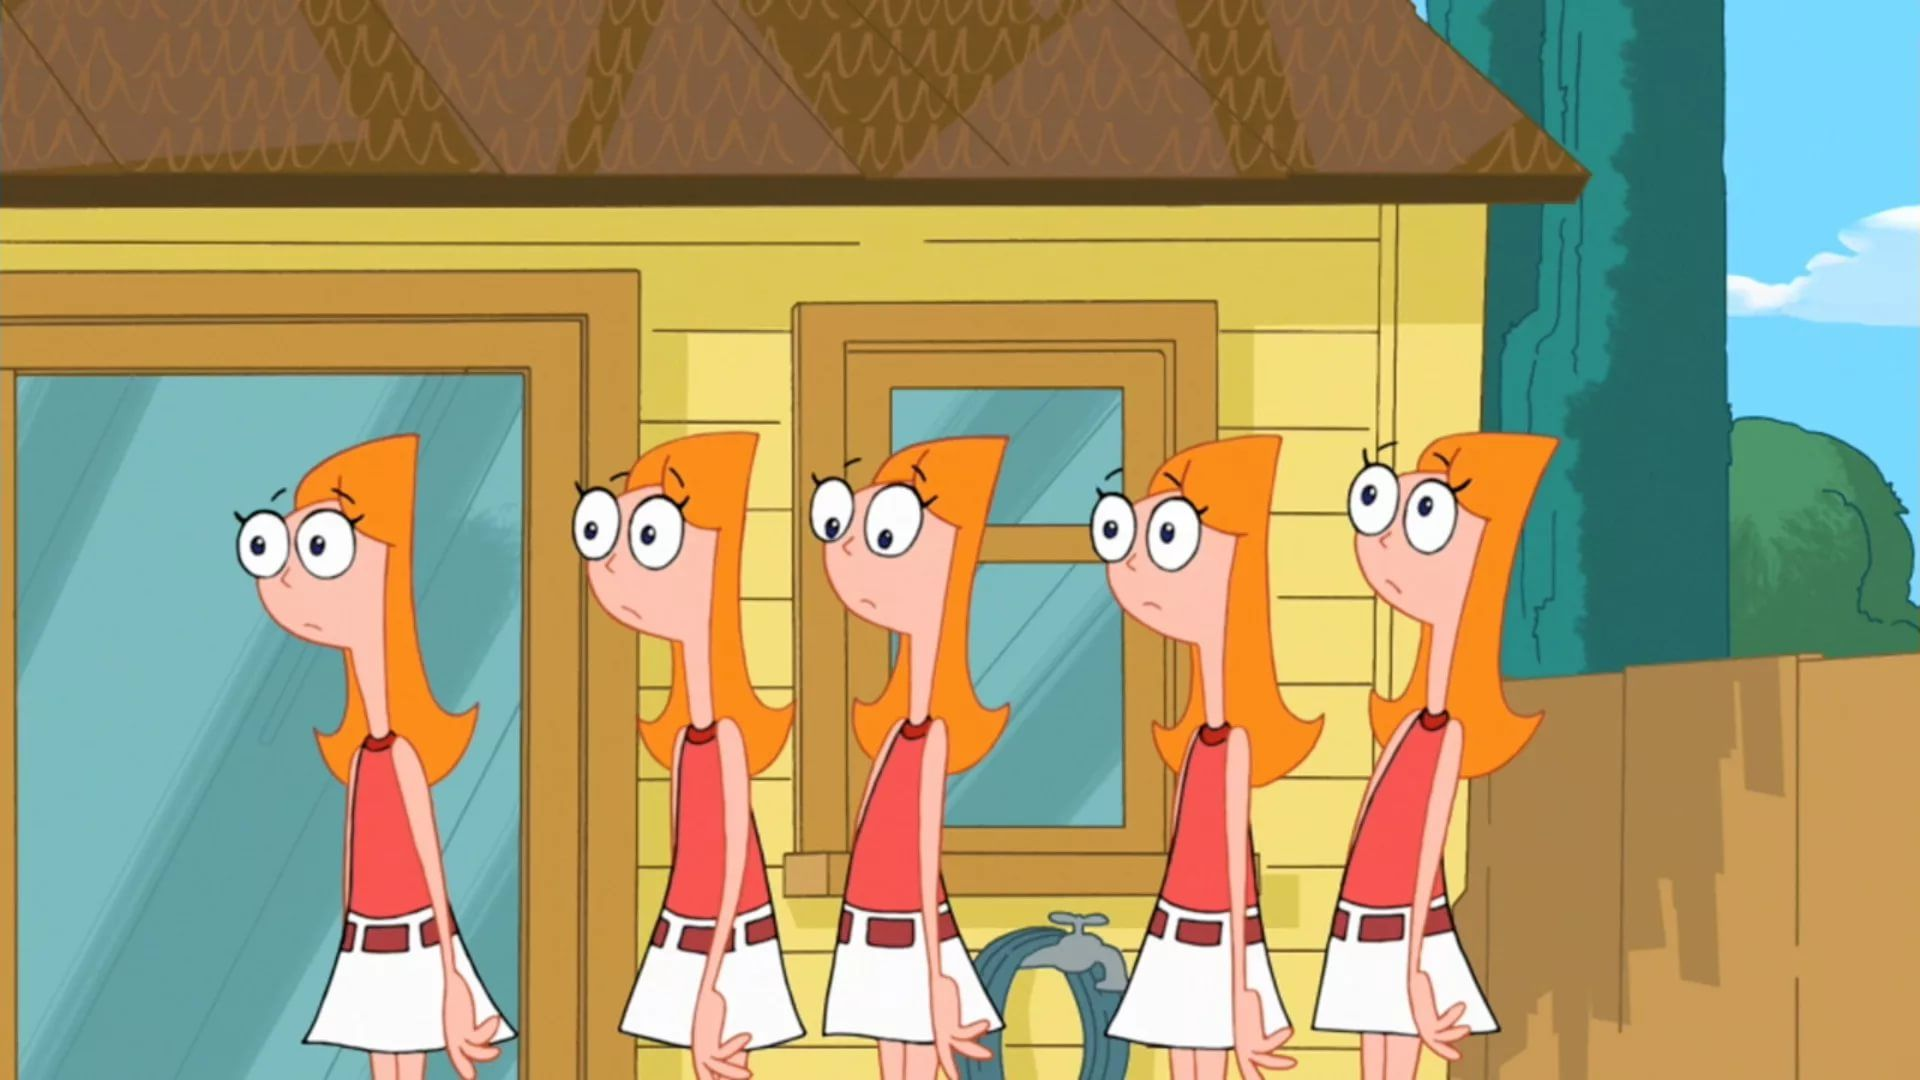 Phineas And Ferb Wikia wallpaper